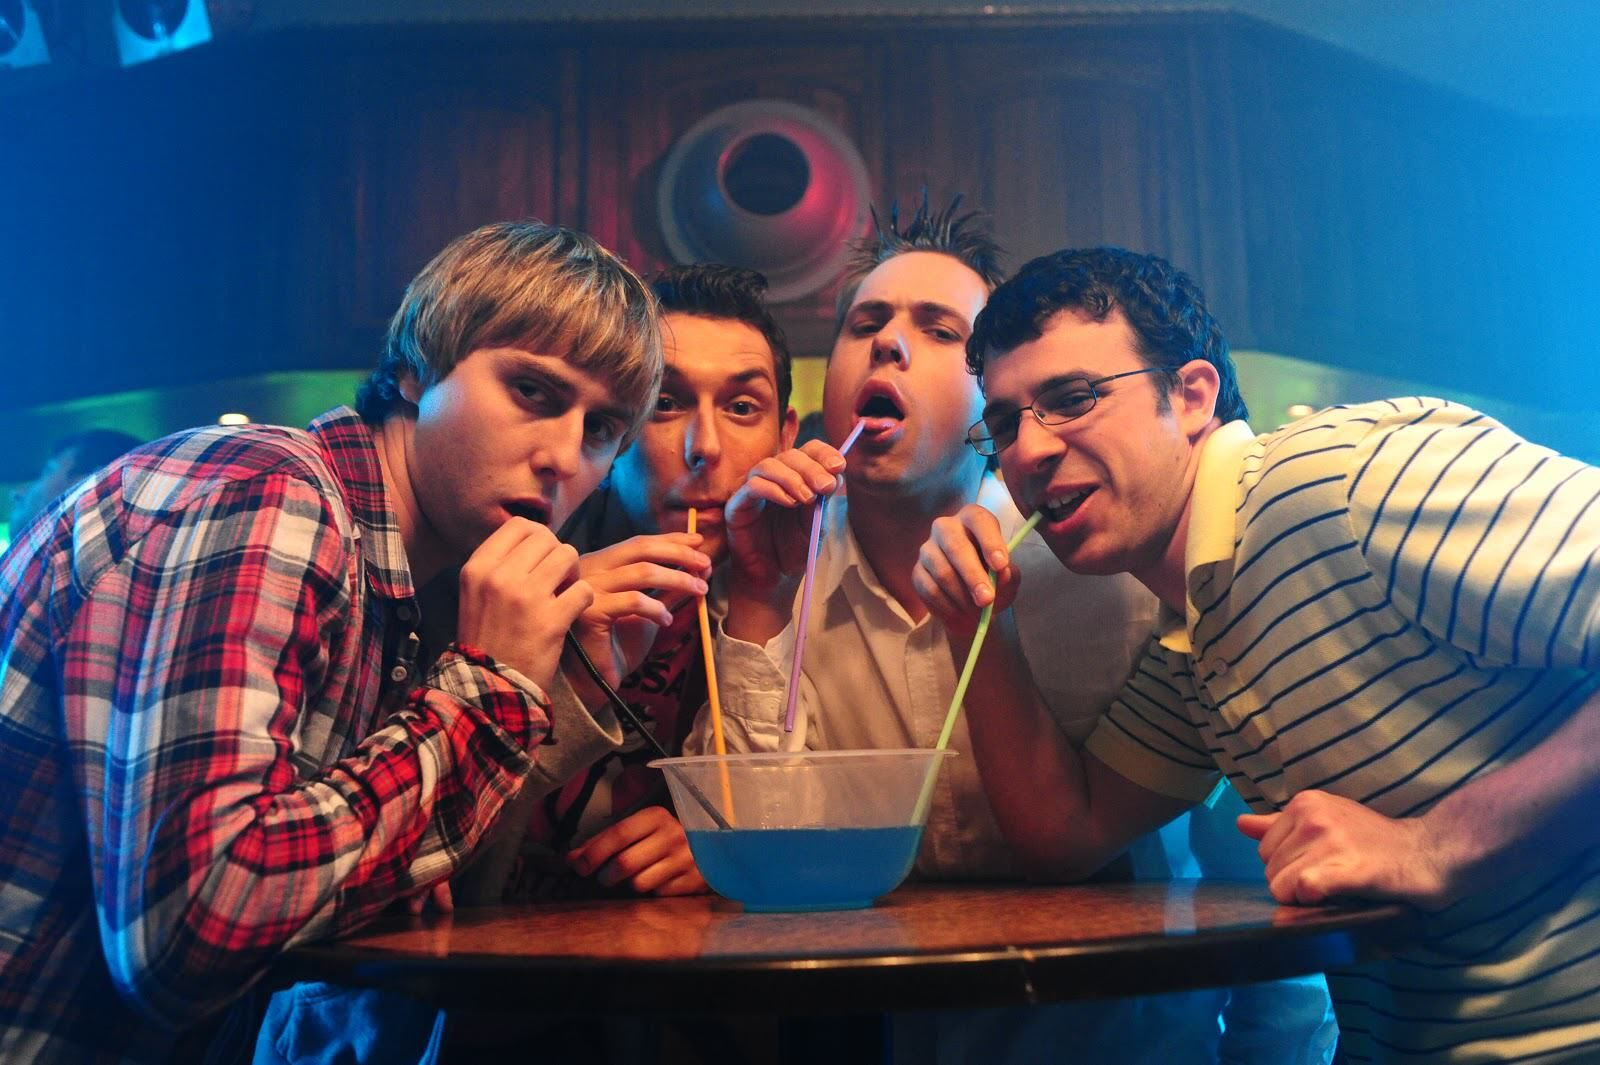 The Inbetweeners Retire Their Characters, Confirm Its All Over The Inbetweeners  l r James Buckley Blake Harrison Joe Harris Simon Bird